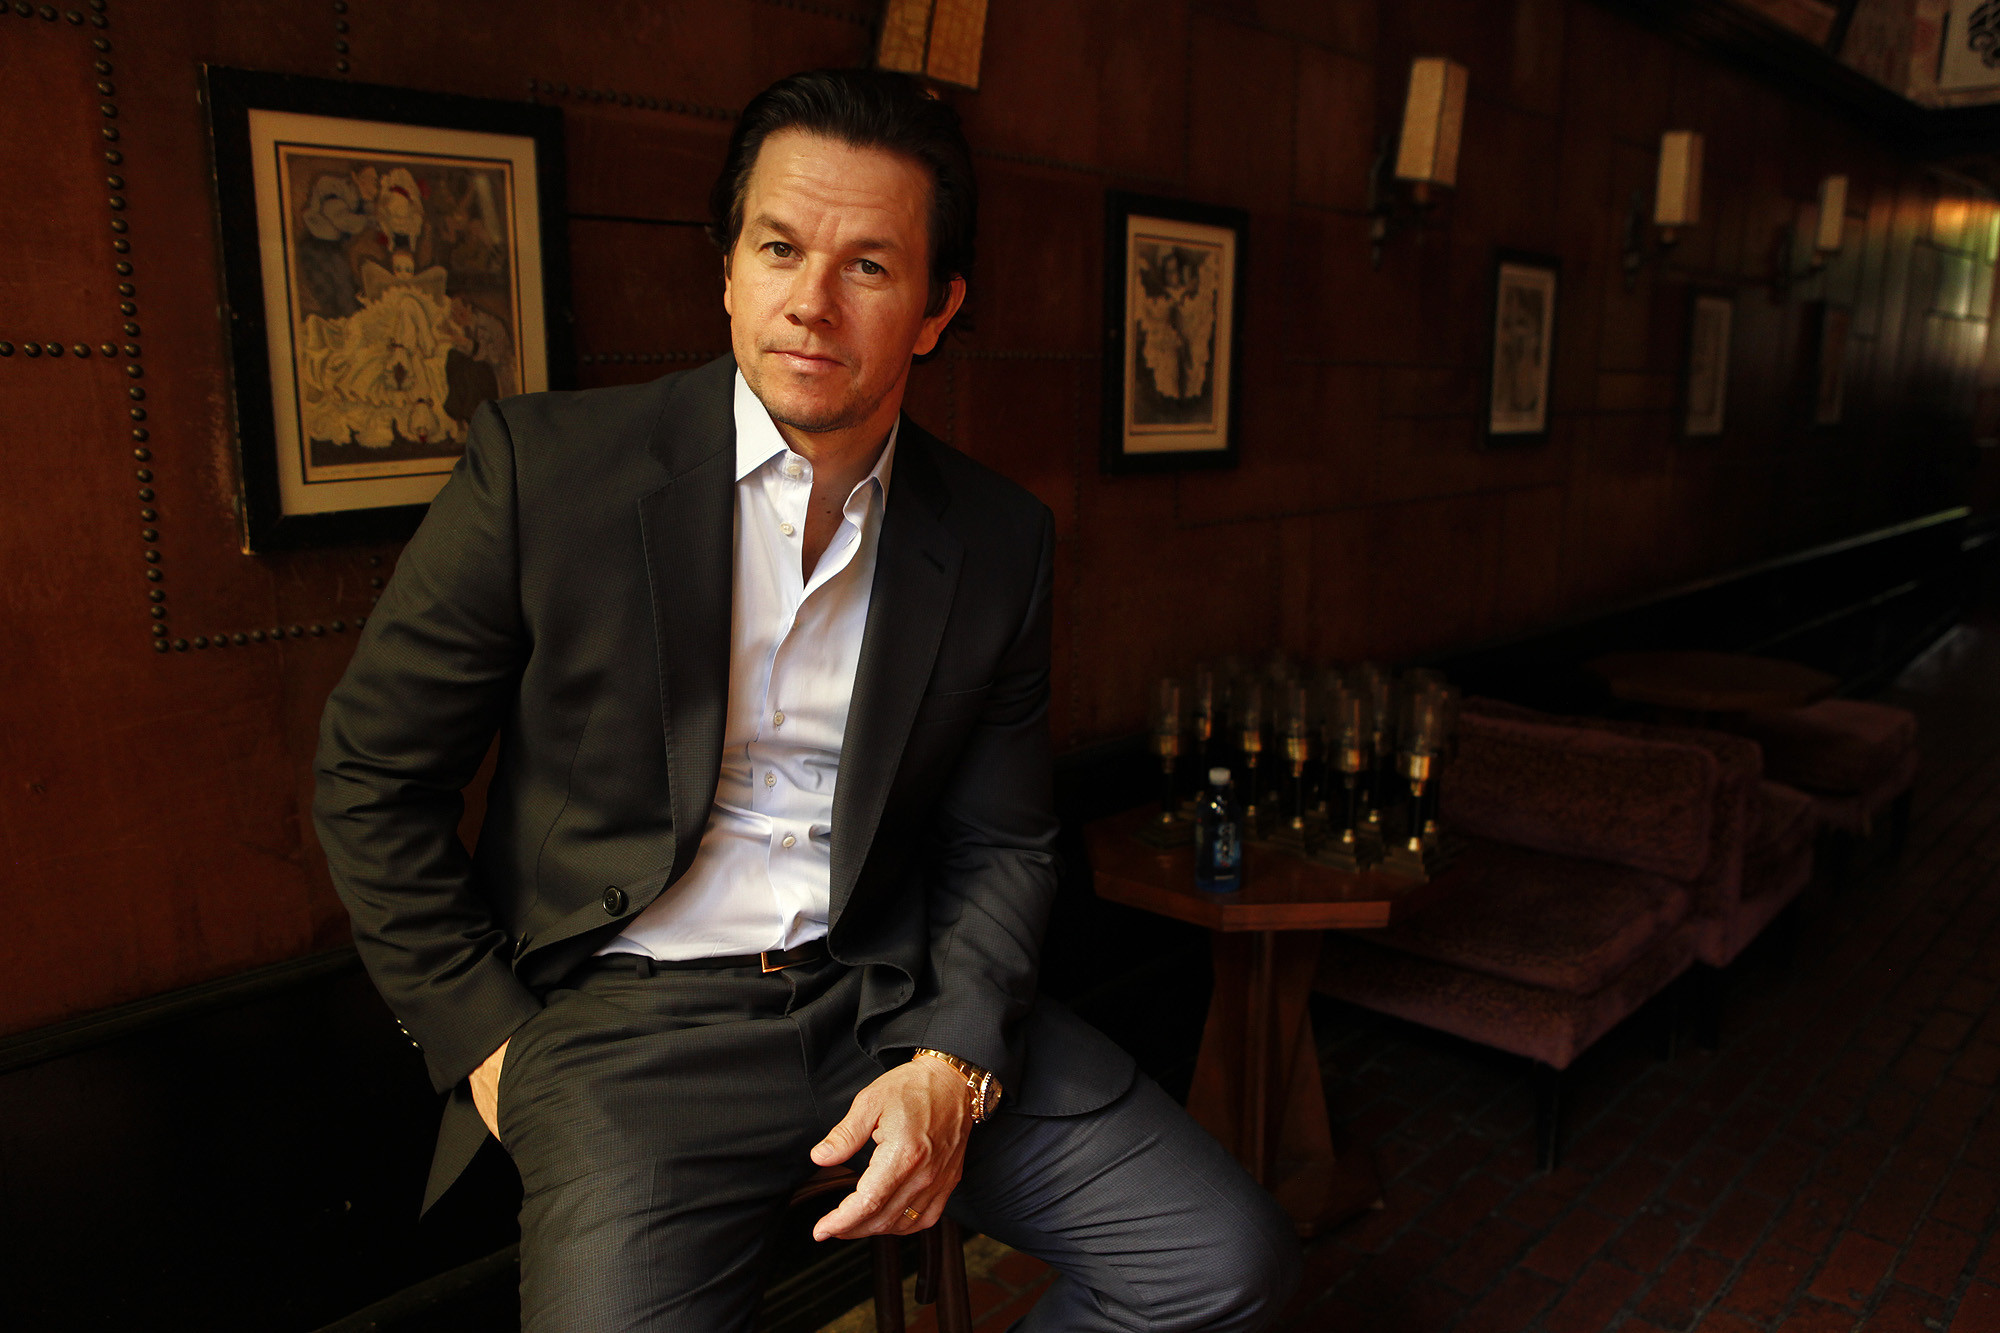 Mark Wahlberg is Forbes' top-earning actor of 2017, making